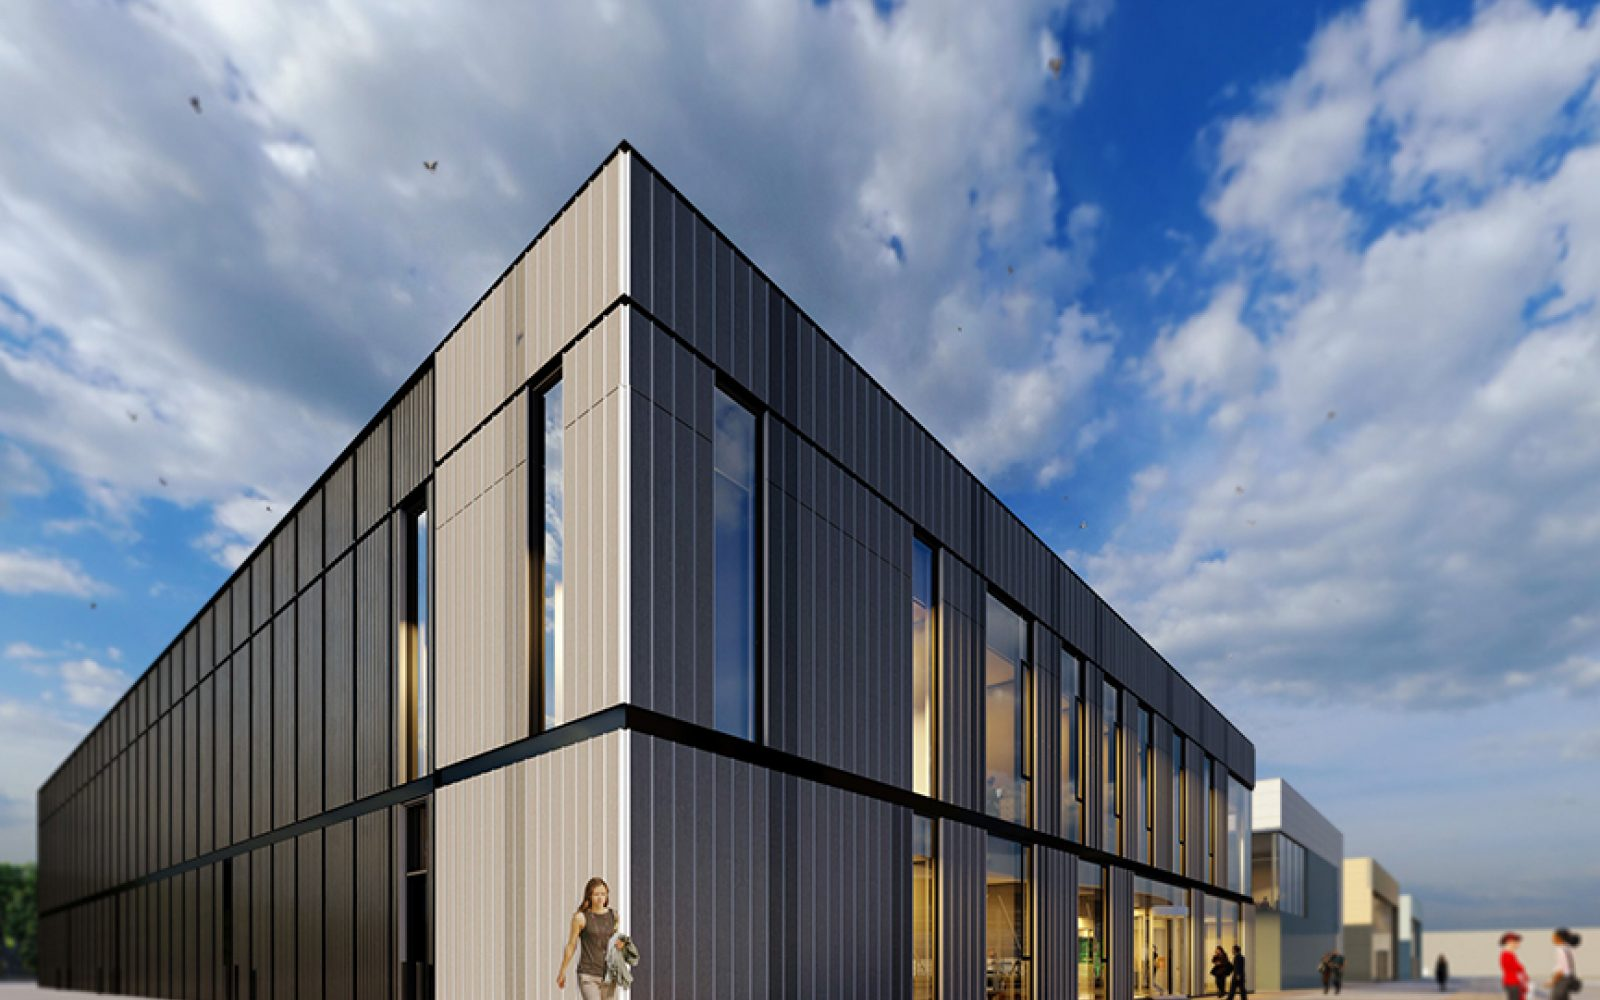 Artist's impression of the new research centre. Image: The University of Sheffield